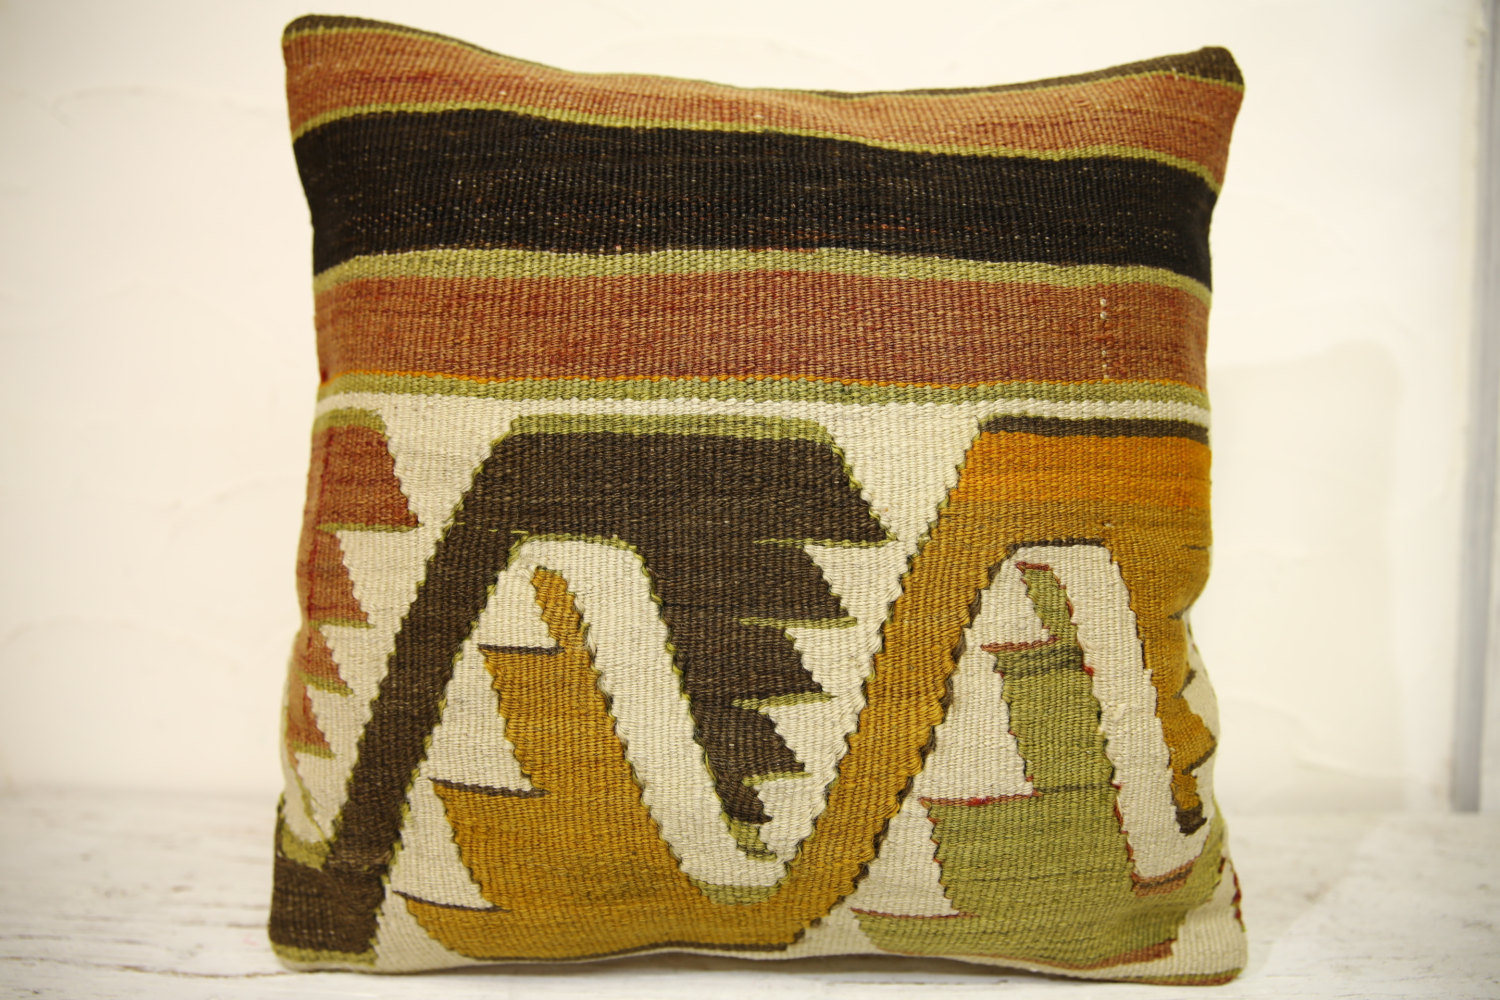 Kilim Pillows | 16x16 | Turkish pillows | 1329 | Accent Pillows , Decorative